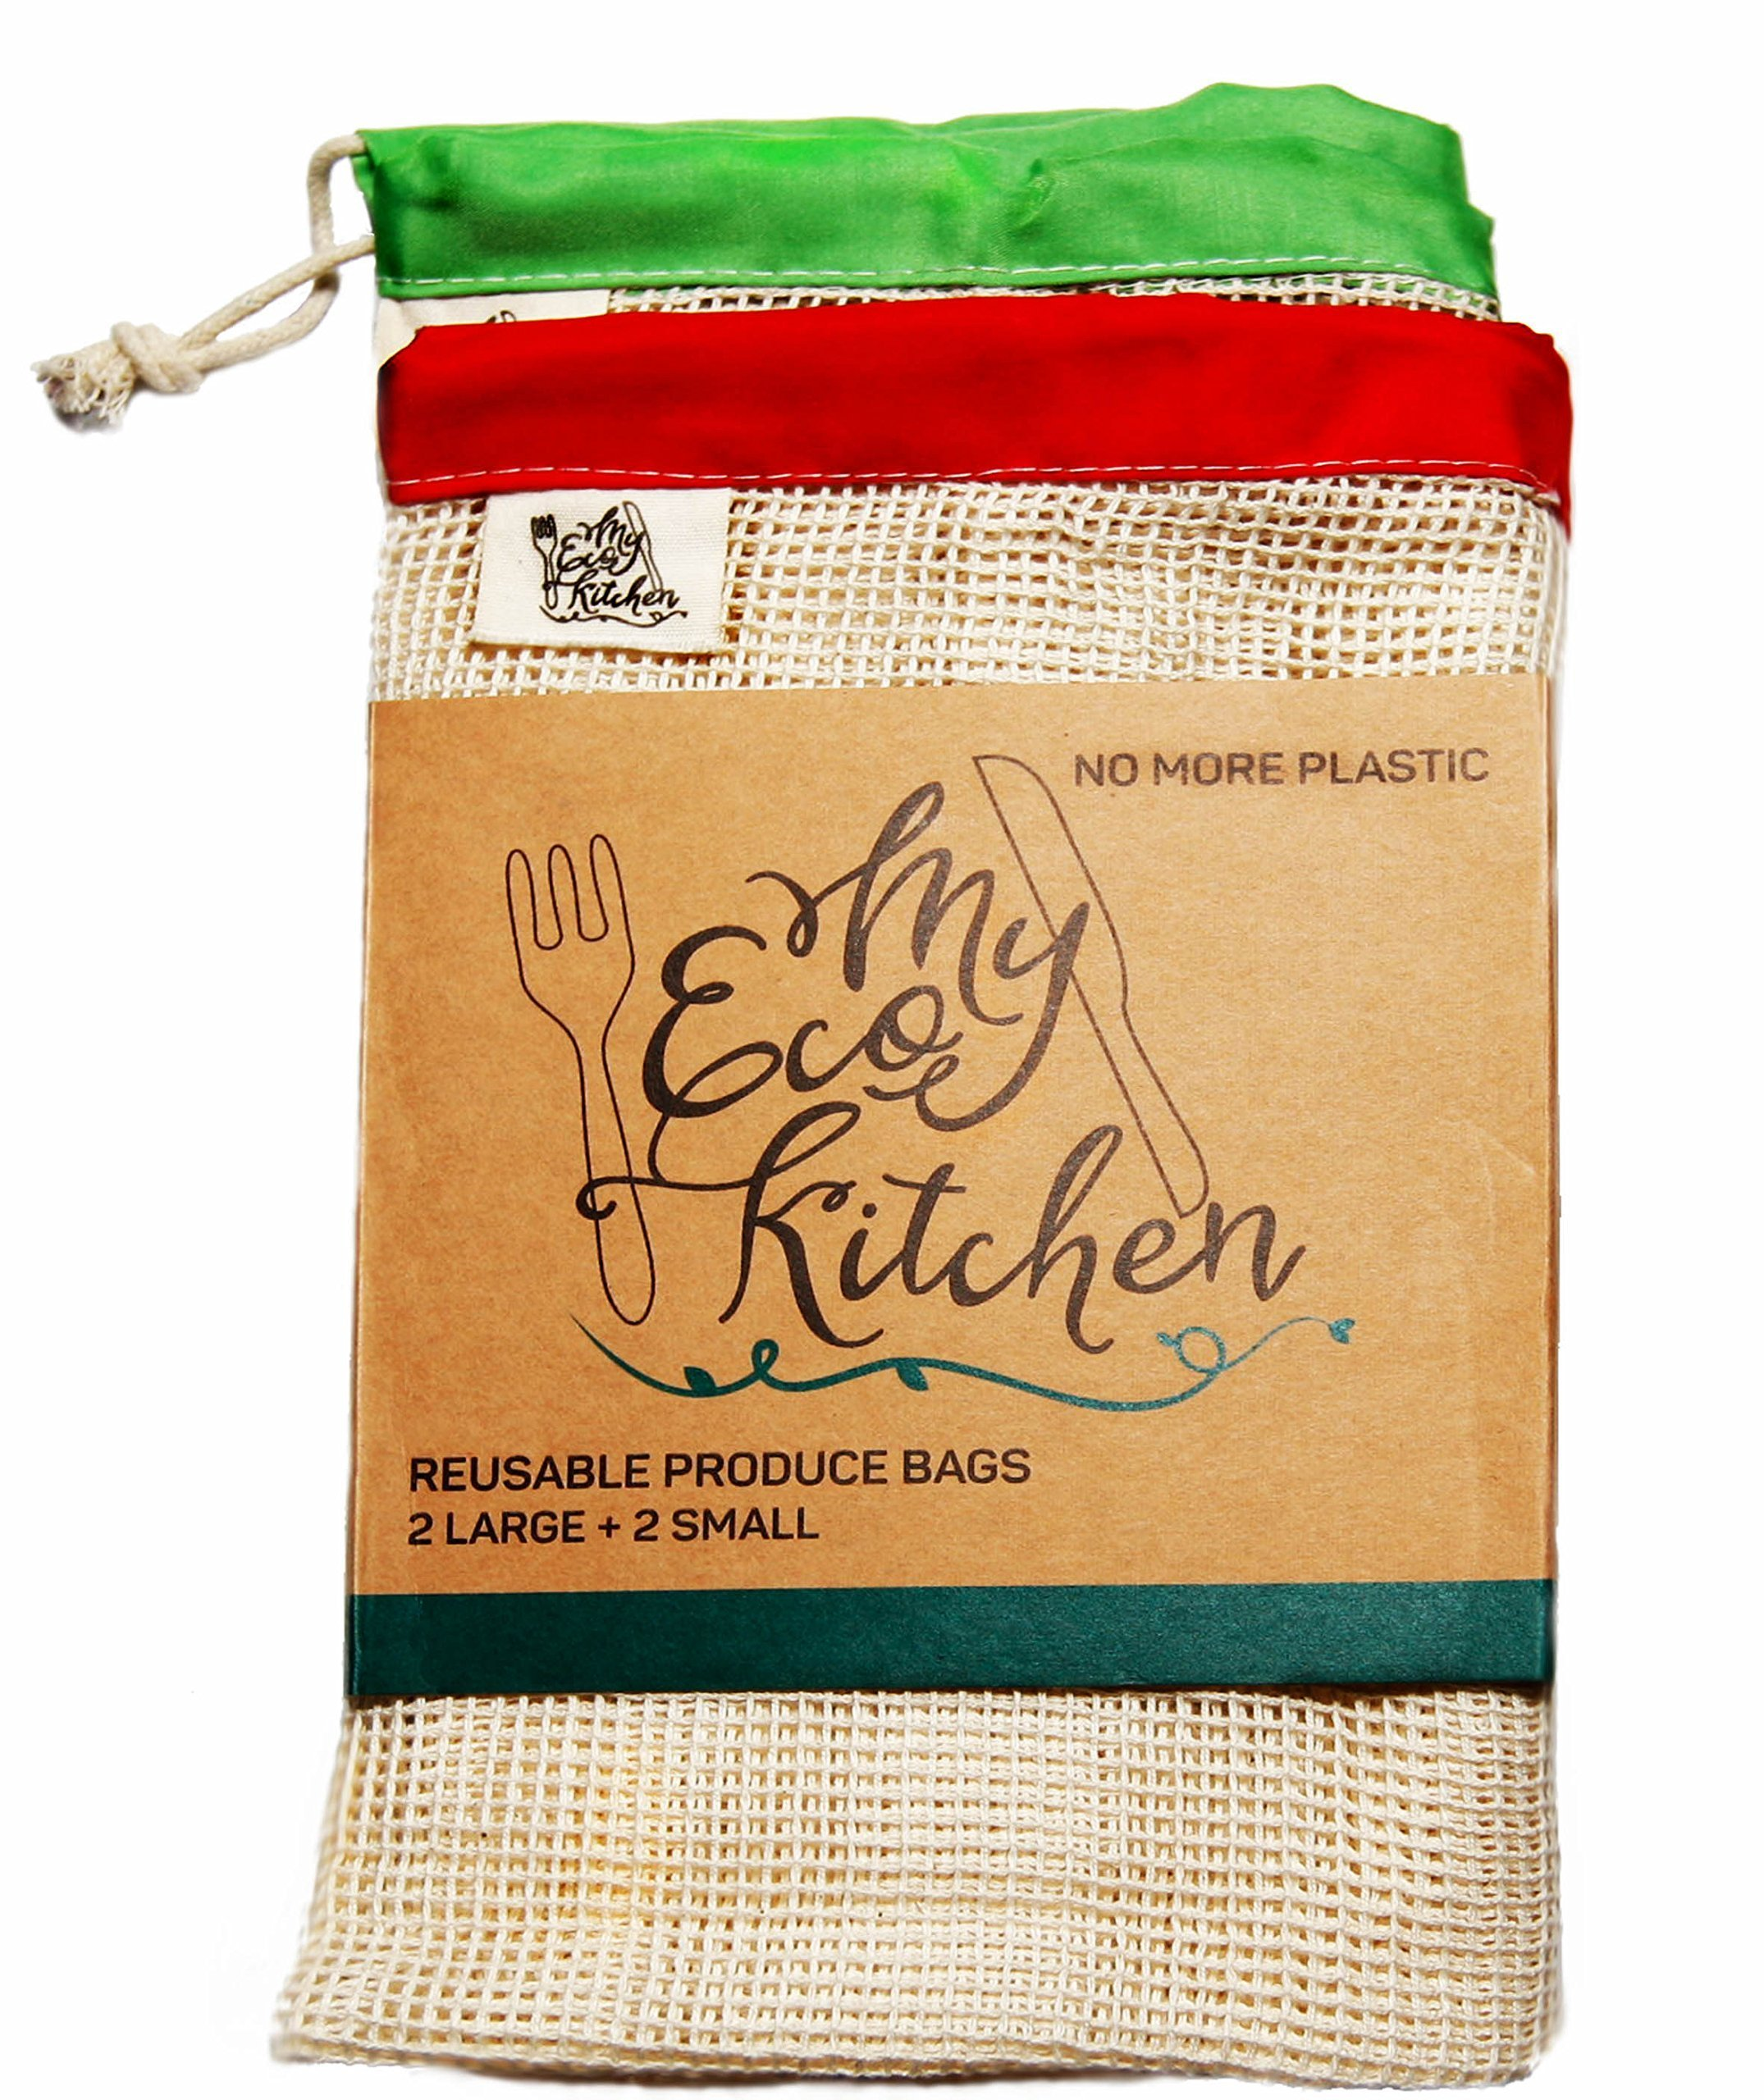 My Eco Kitchen Reusable Produce Bags - Cotton Mesh Produce Bags - Washable - Biodegradable - Set of 4 - Eco Friendly - No More Plastic - Perfect Eco Friendly Gift""